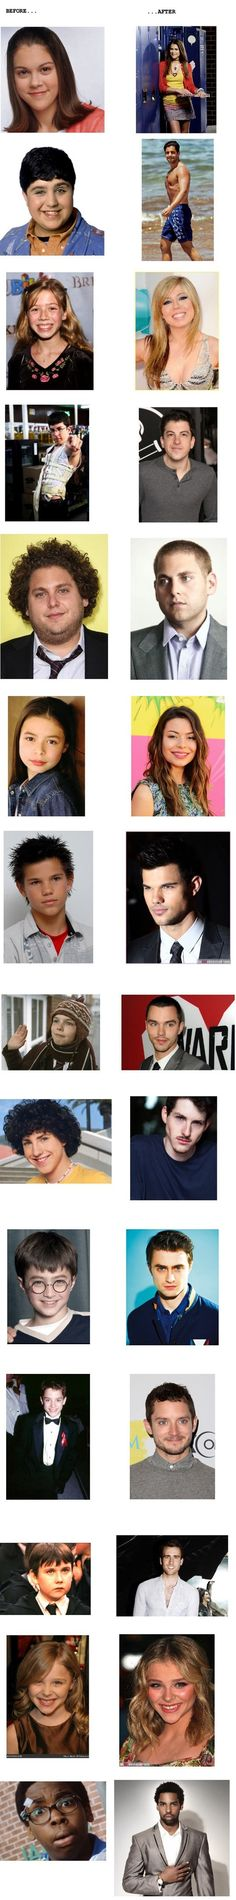 Celebrities then and now -